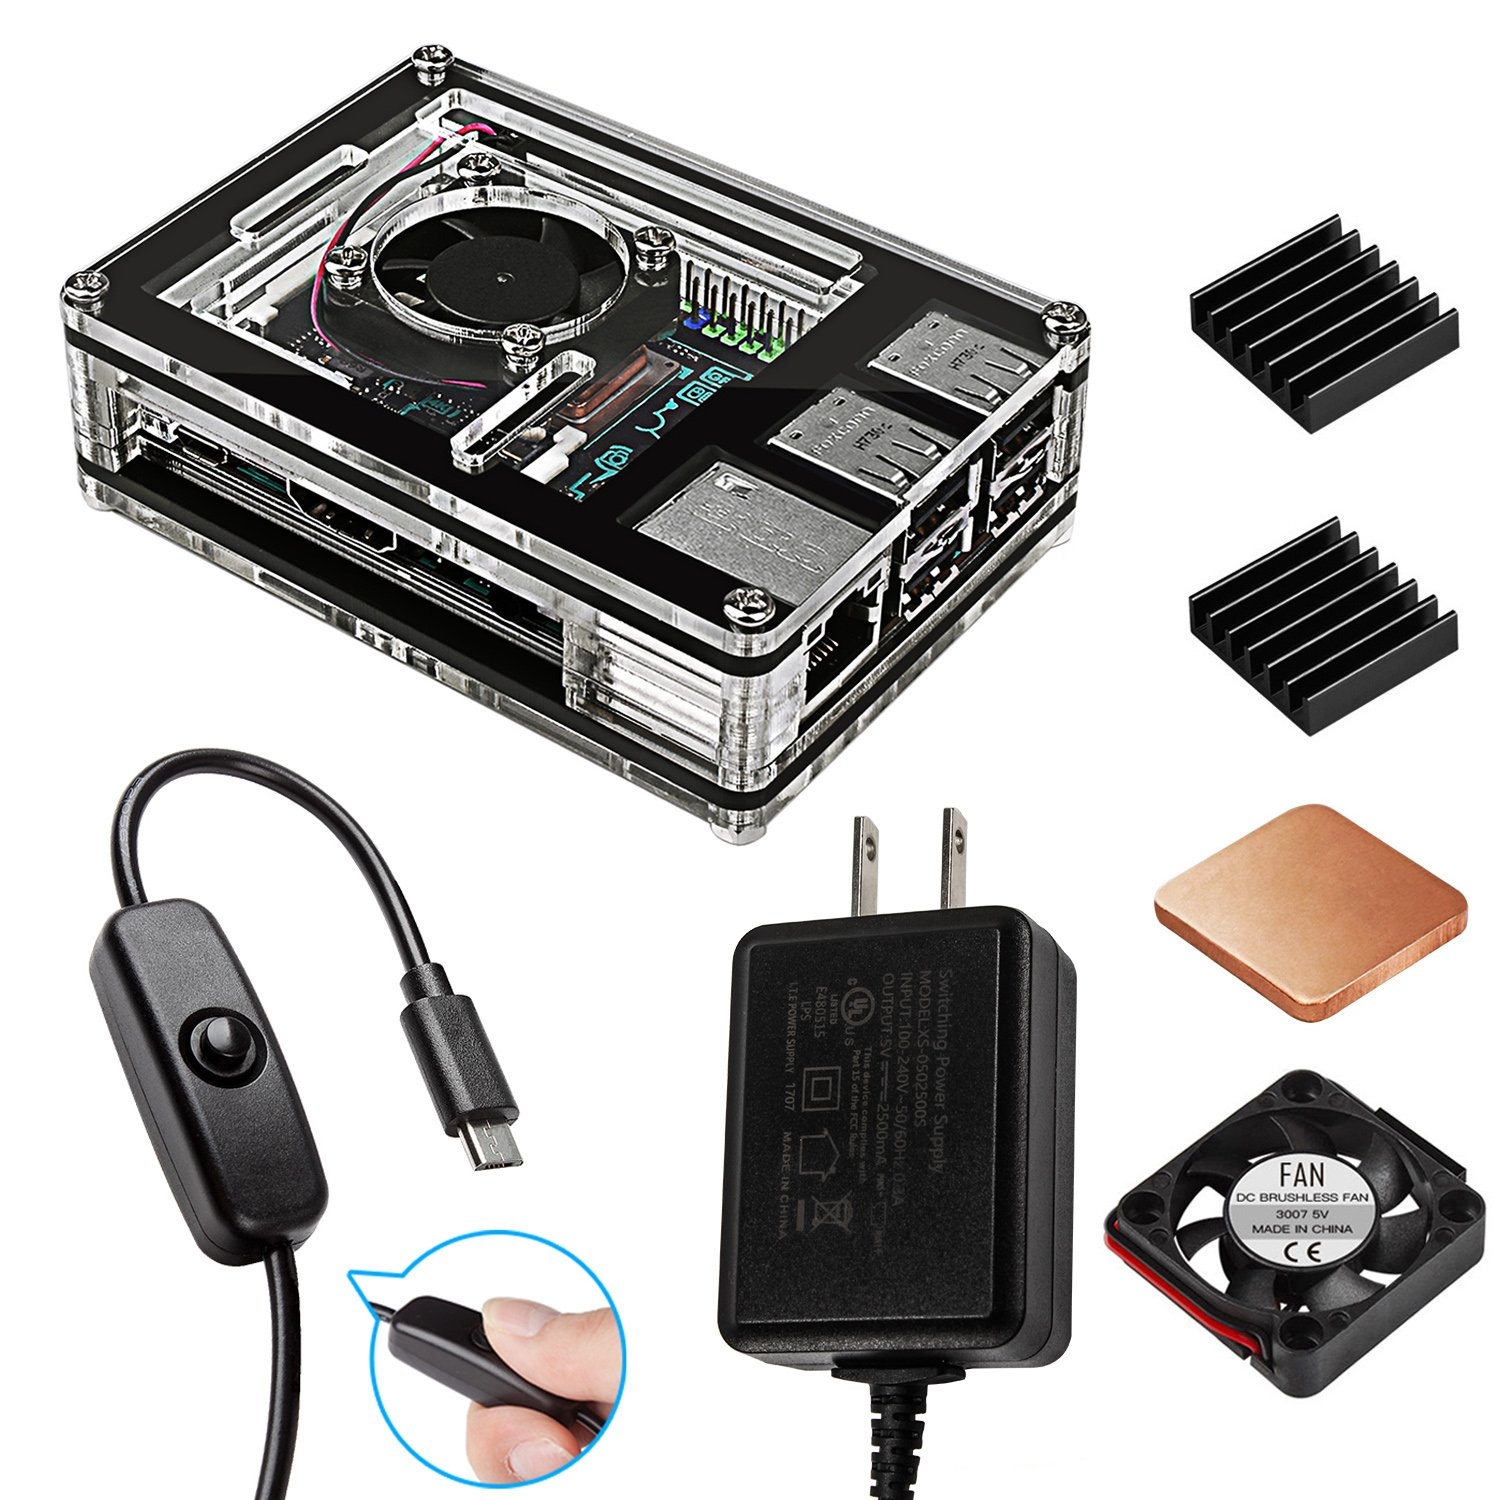 Smraza ASUS Tinker Board Case with Cooling Fan, 2.5A Power Supply with ON/OFF Switch, Aluminum Heatsinks(Not Fit for Asus Tinker Board S Version)